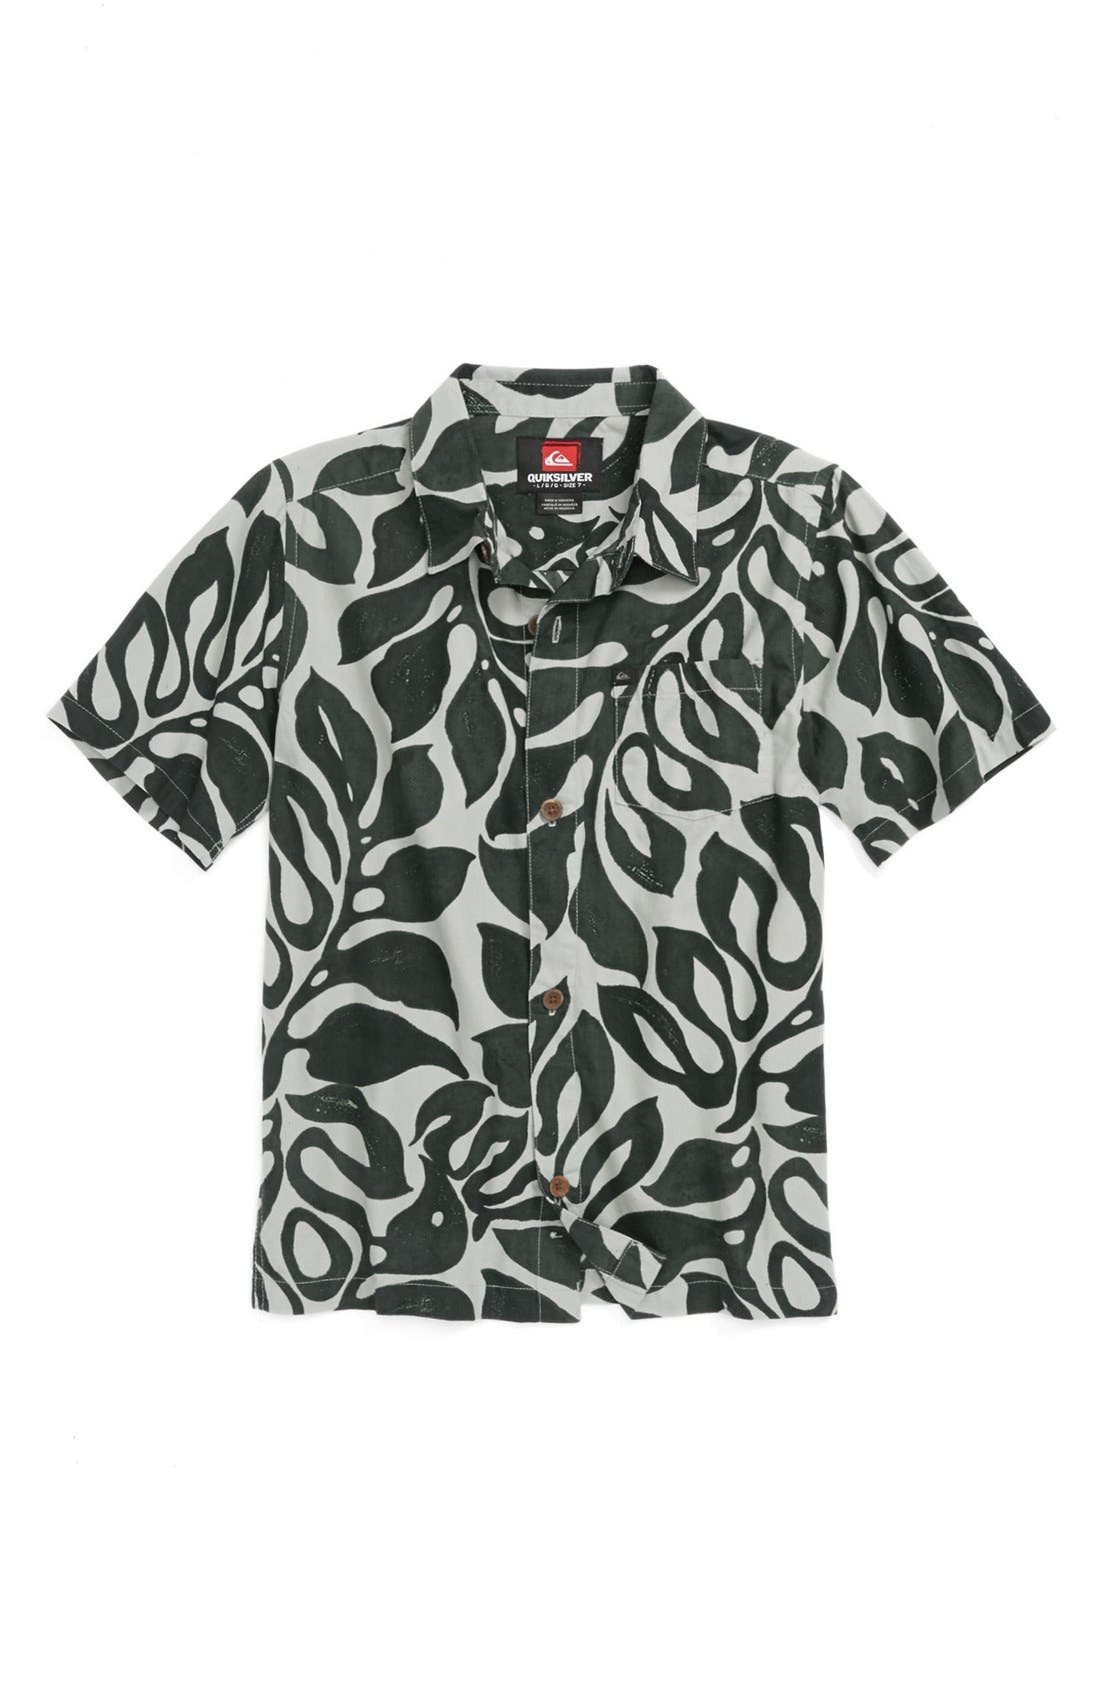 Alternate Image 1 Selected - Quiksilver 'Hilo' Shirt (Little Boys)